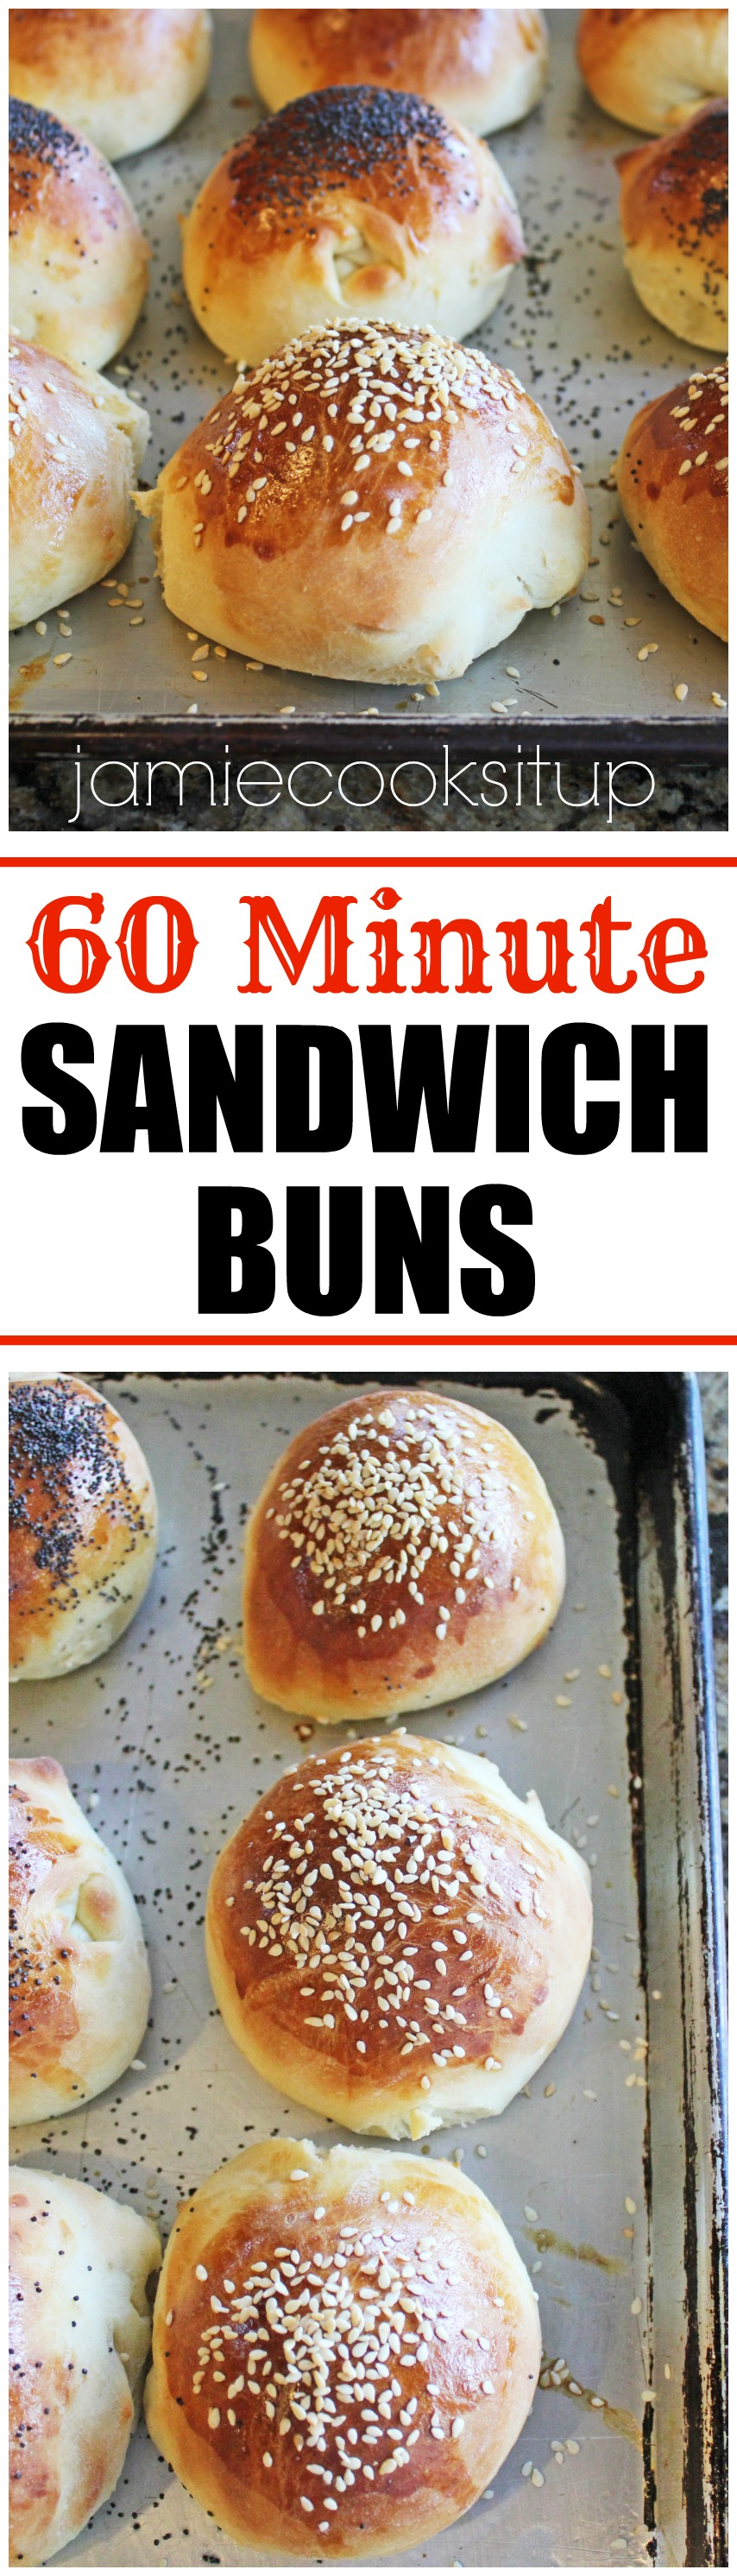 60 Minute Sandwich Buns from Jamie Cooks It U!